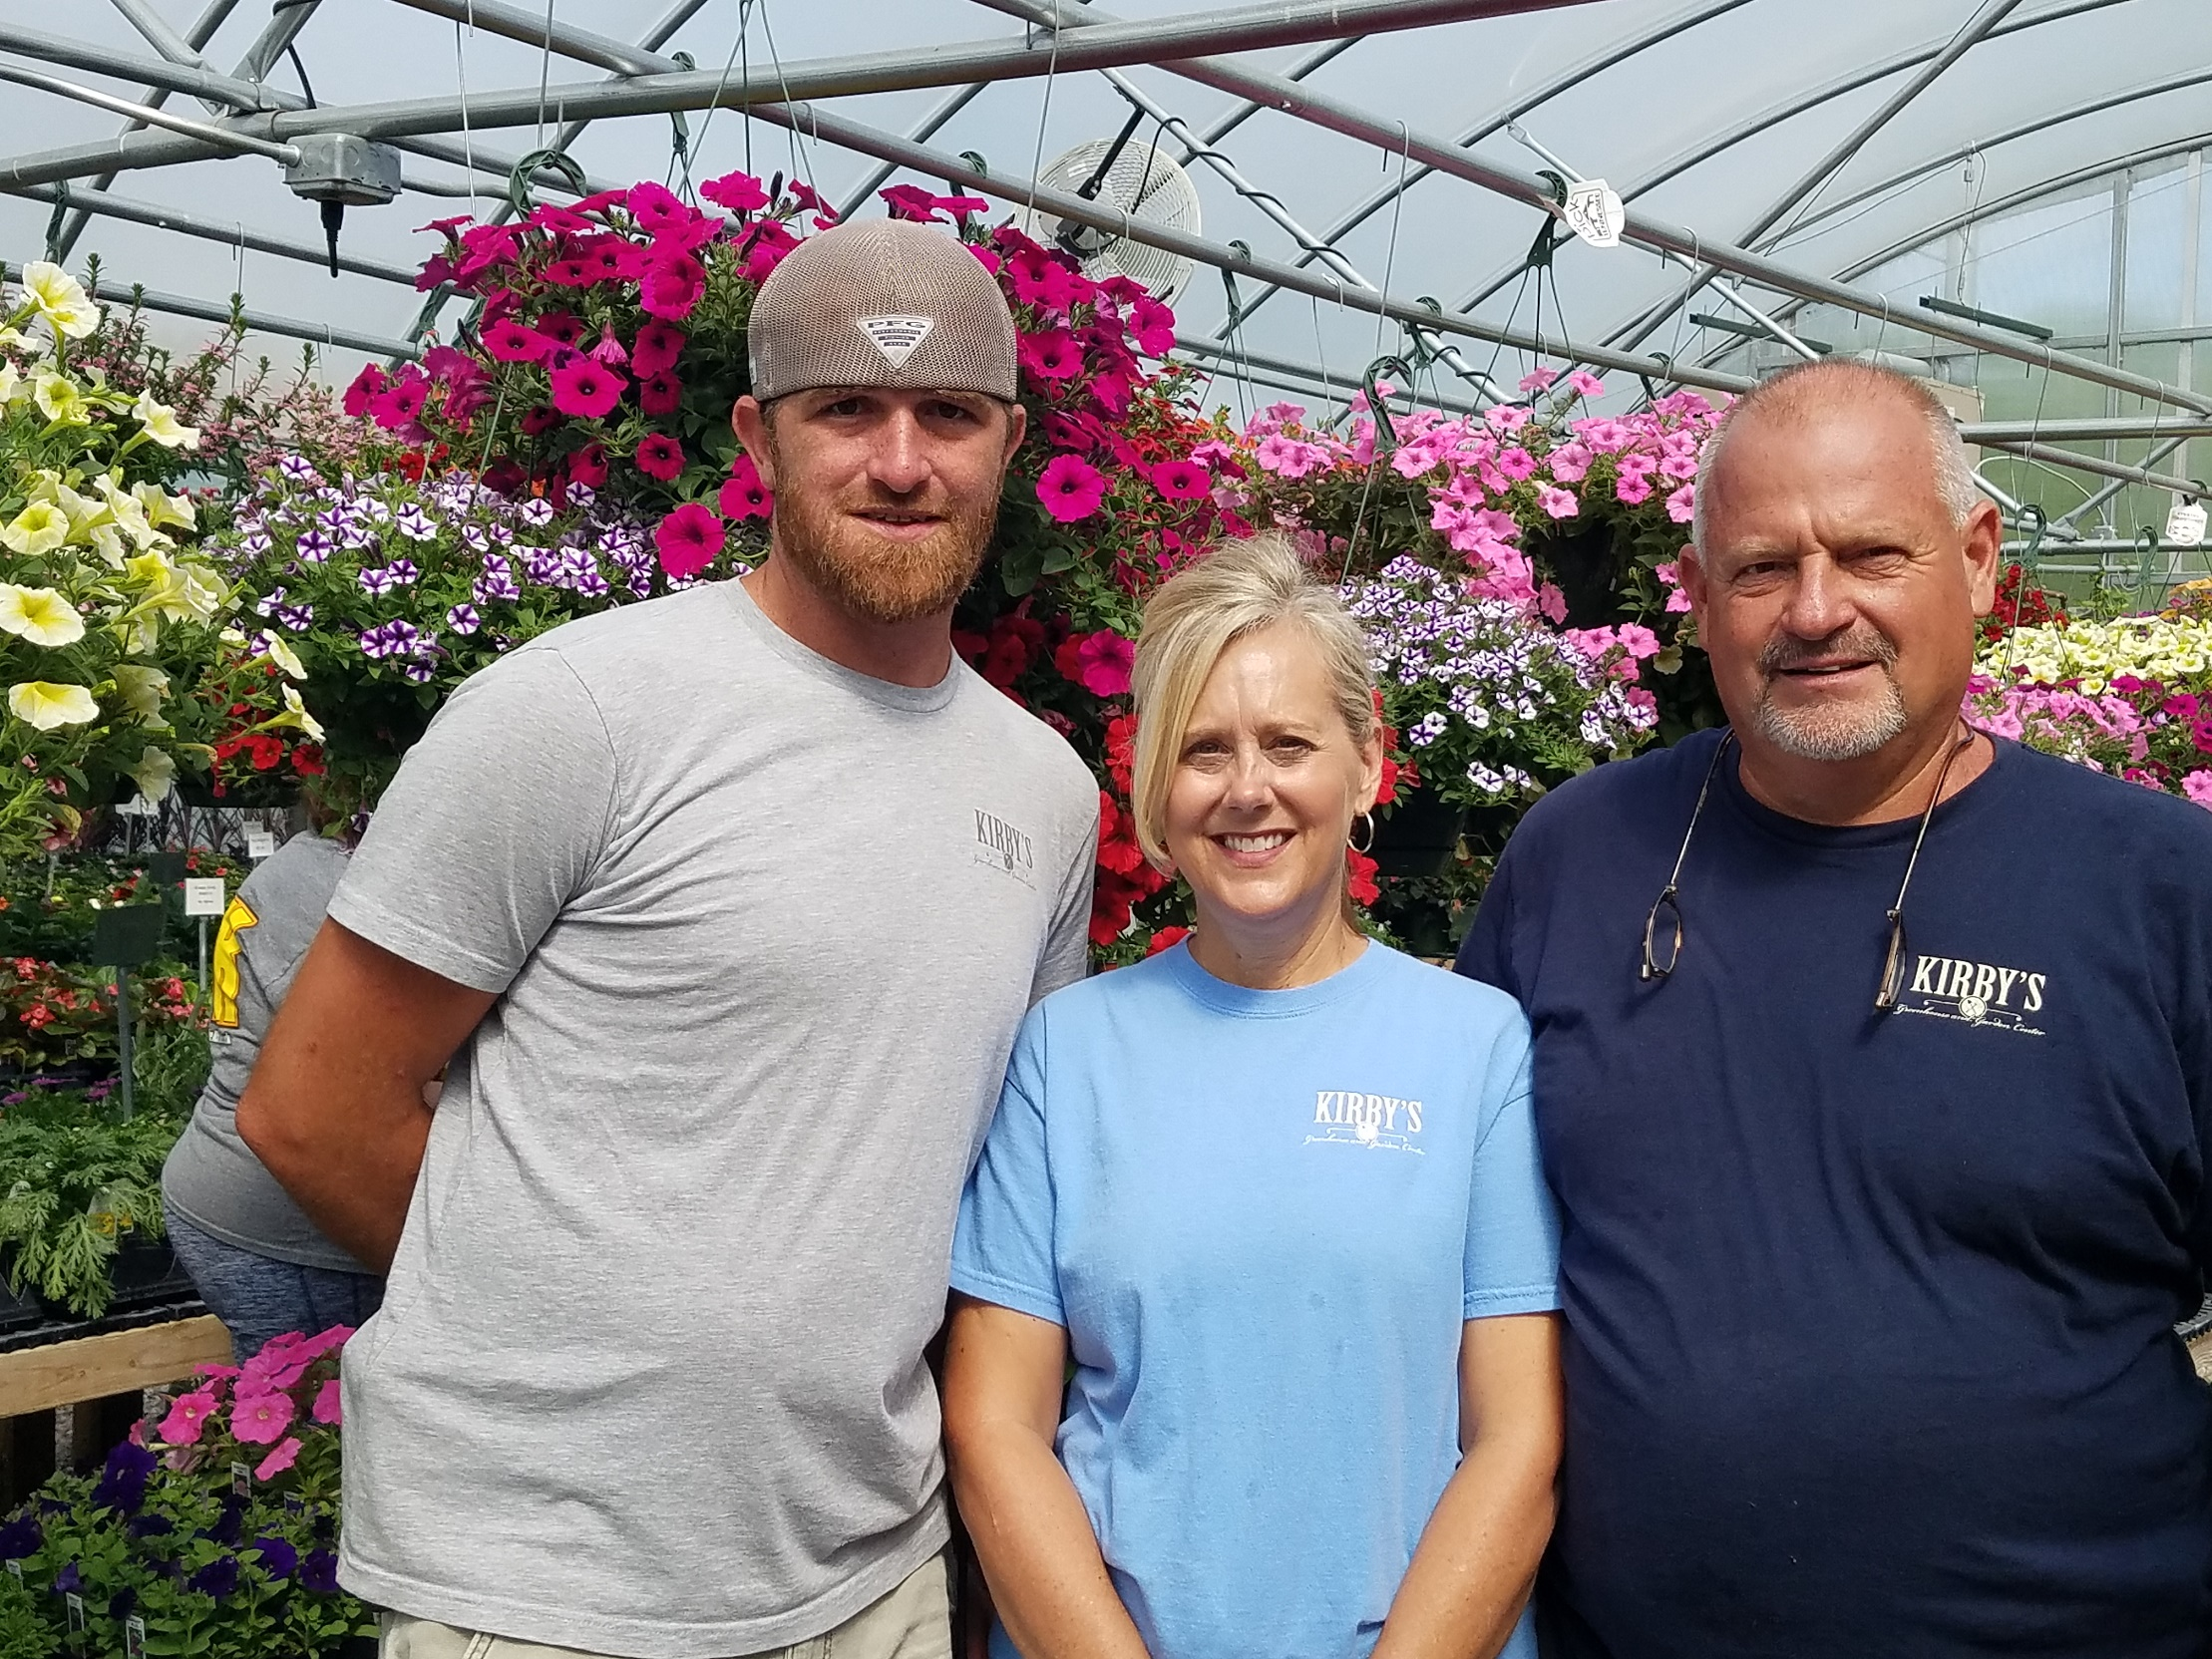 Kirby Plants is a gardener's happy place - Knox TN Today